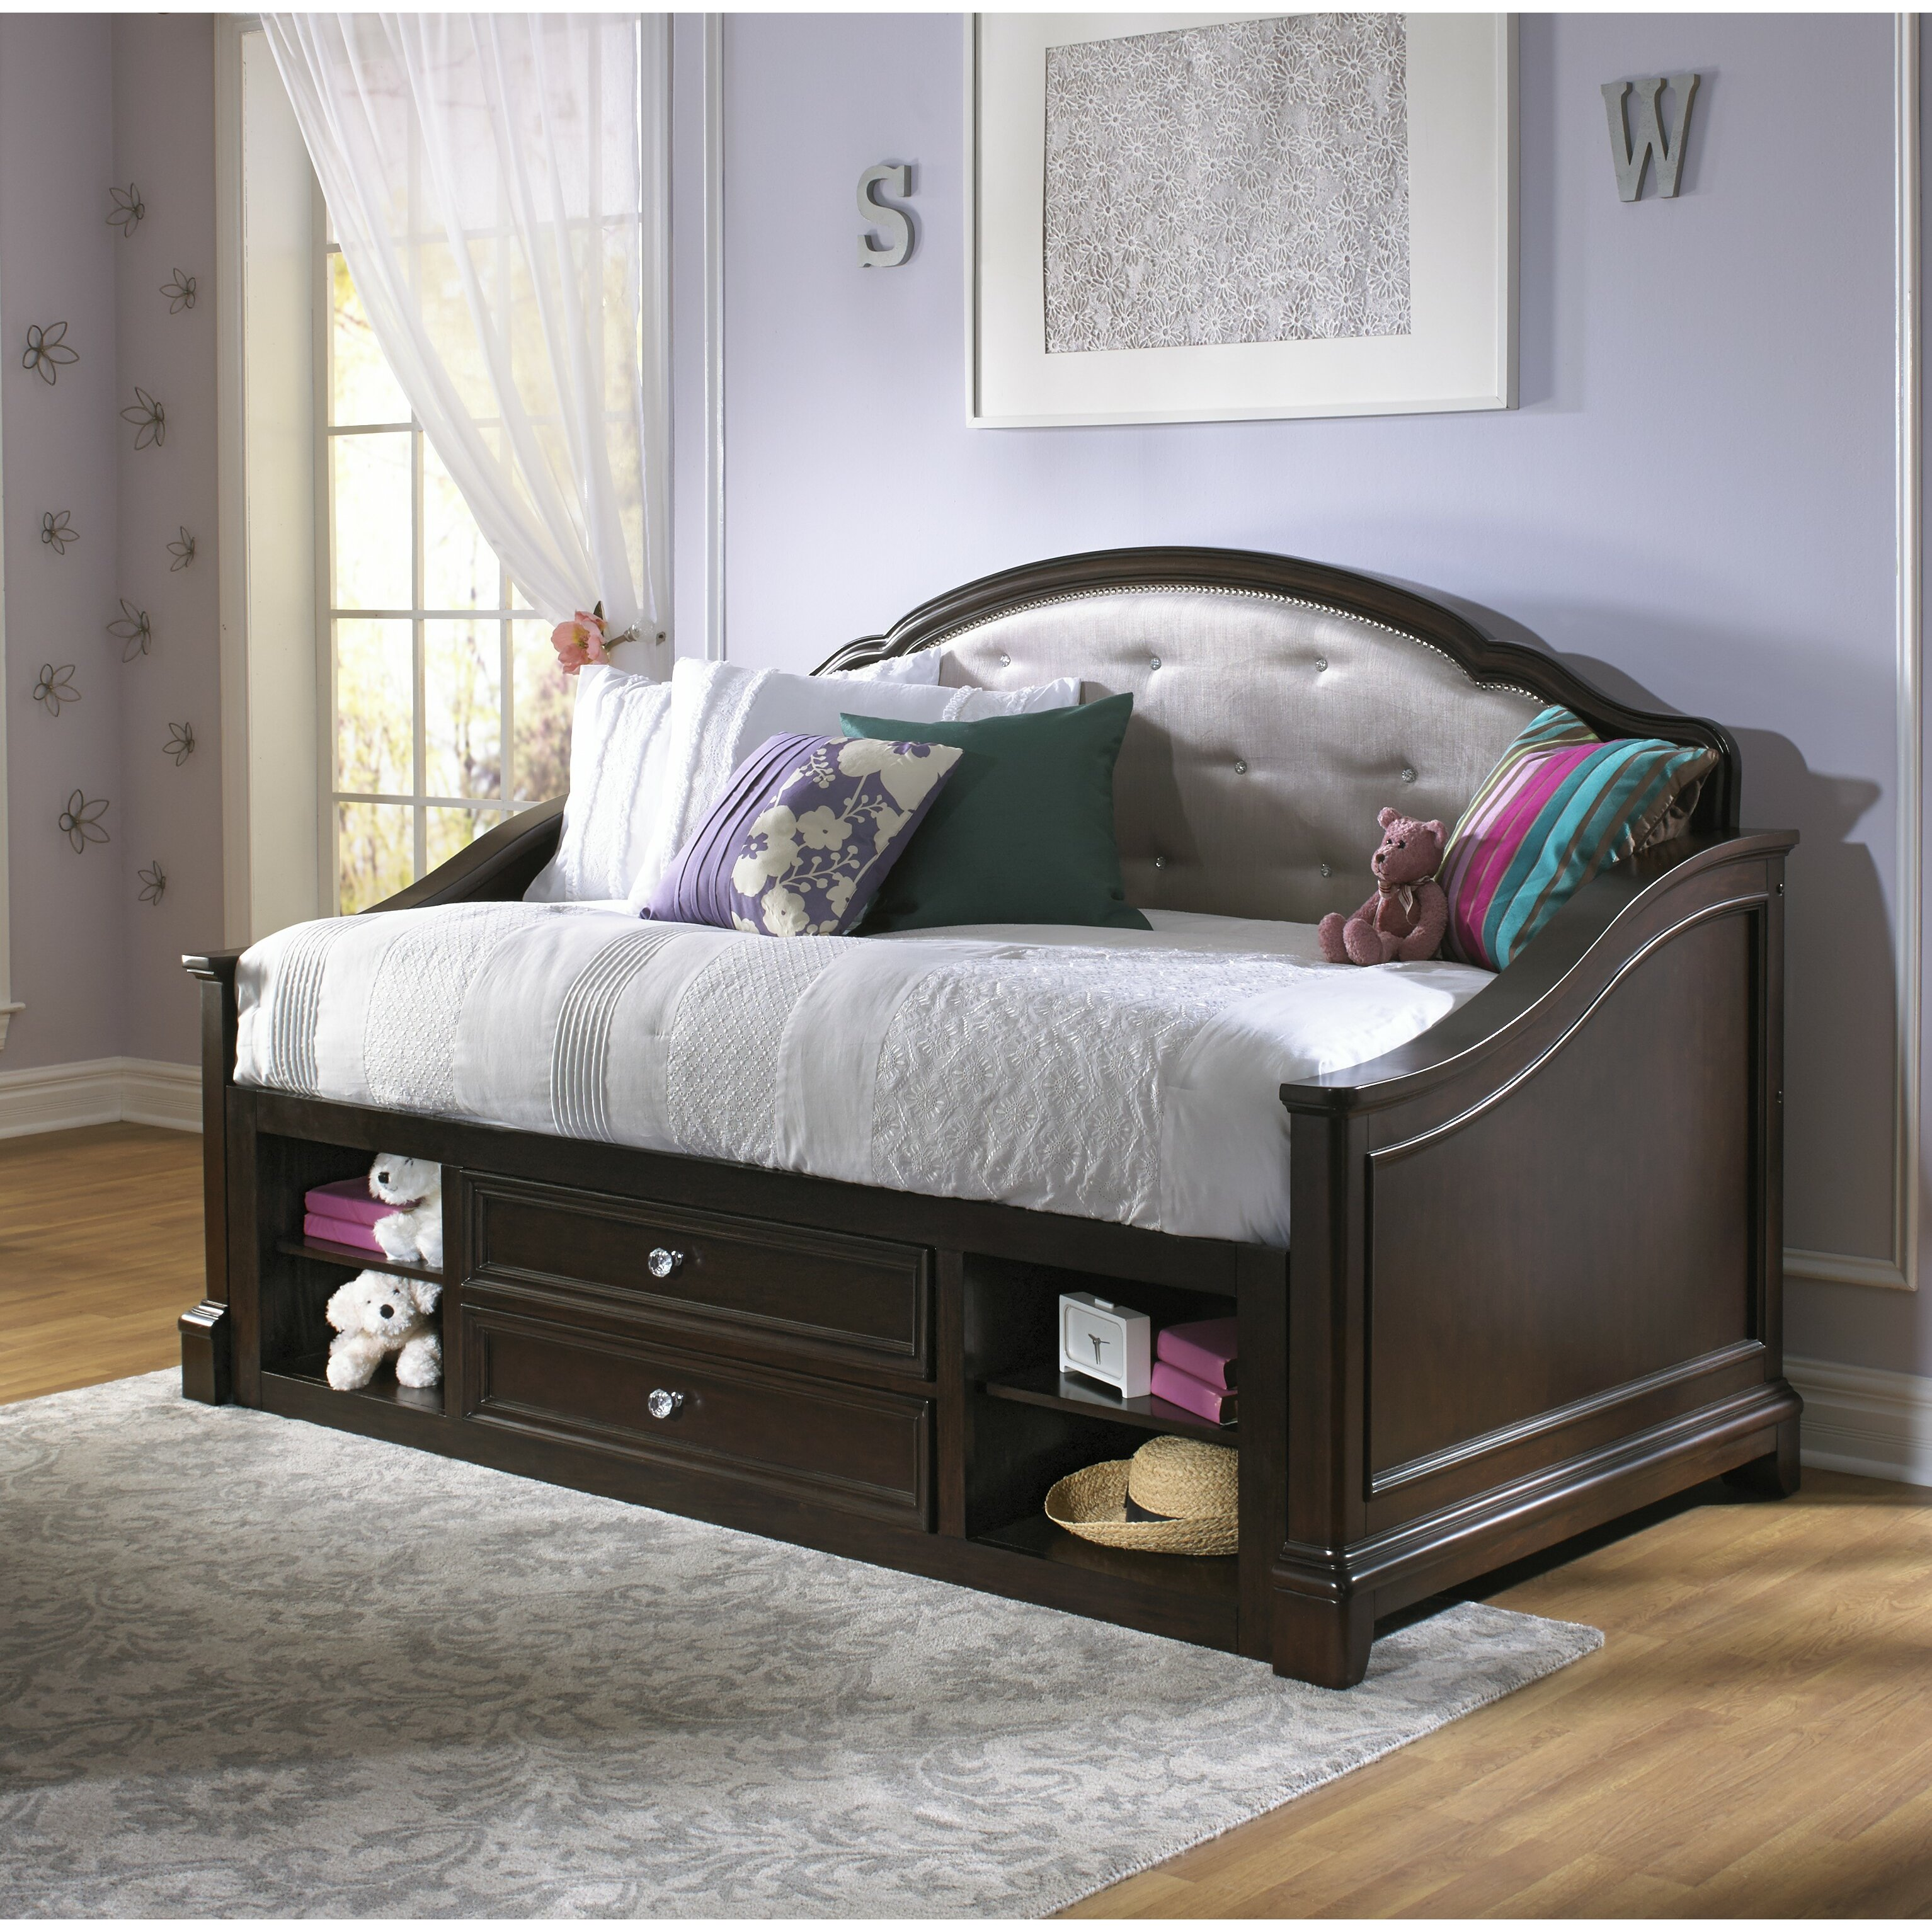 Samuel Lawrence Girls 39 Glam Daybed With Trundle Reviews Wayfair Supply